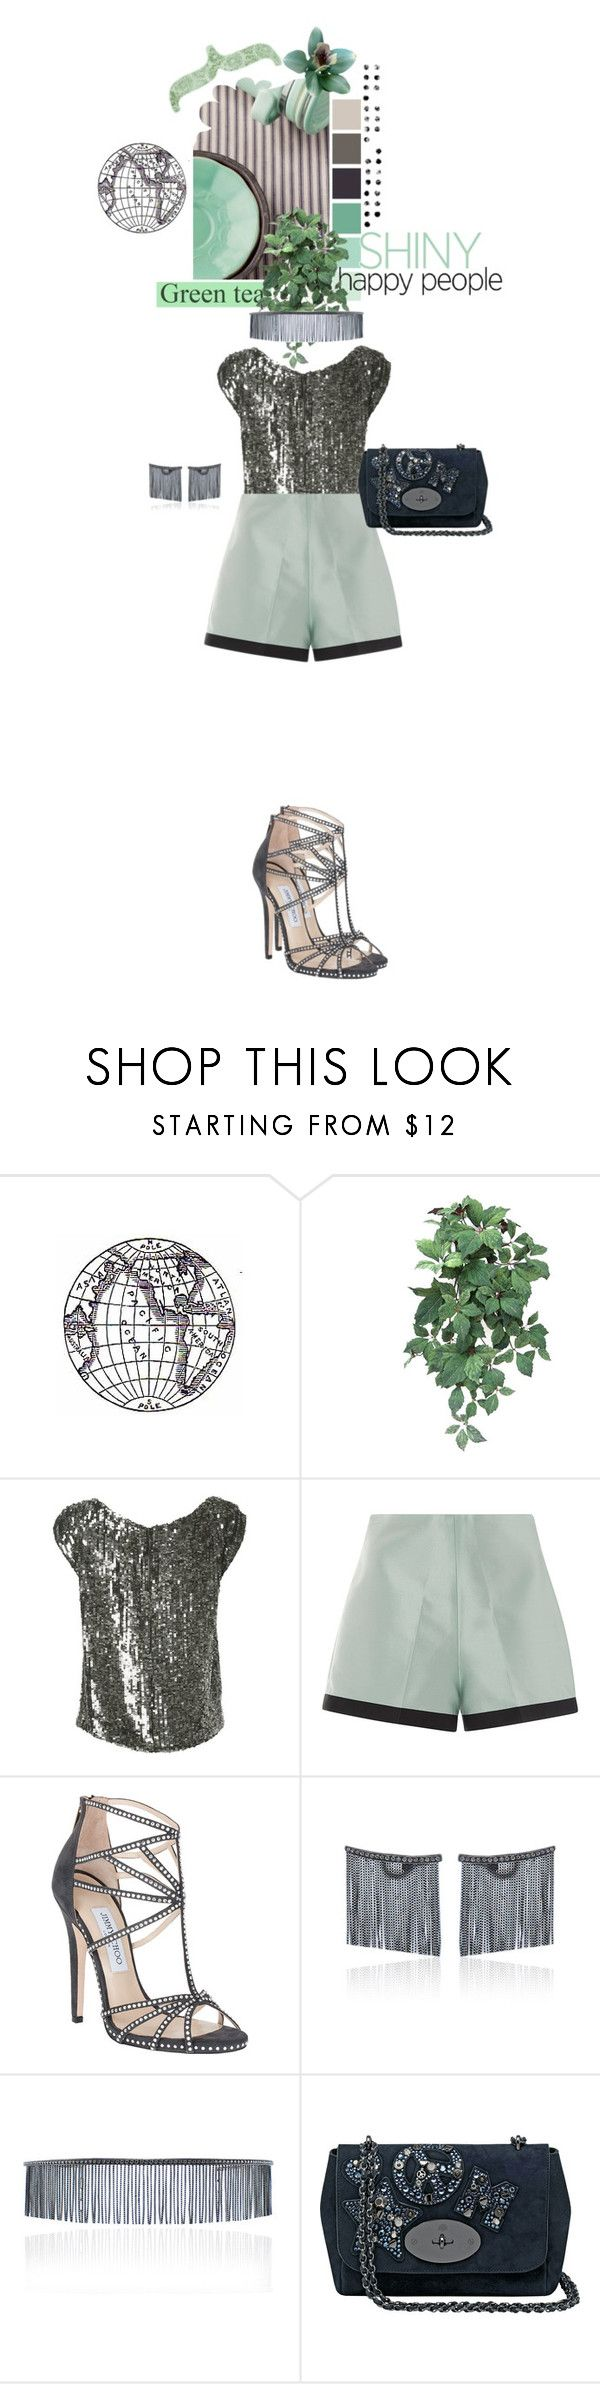 """""""2174.Shiny happy people"""" by silvinadupuywriter ❤ liked on Polyvore featuring Seed Design, PAM, éS, Daphne, Leal Daccarett, Jimmy Choo, Jack Vartanian and Mulberry"""